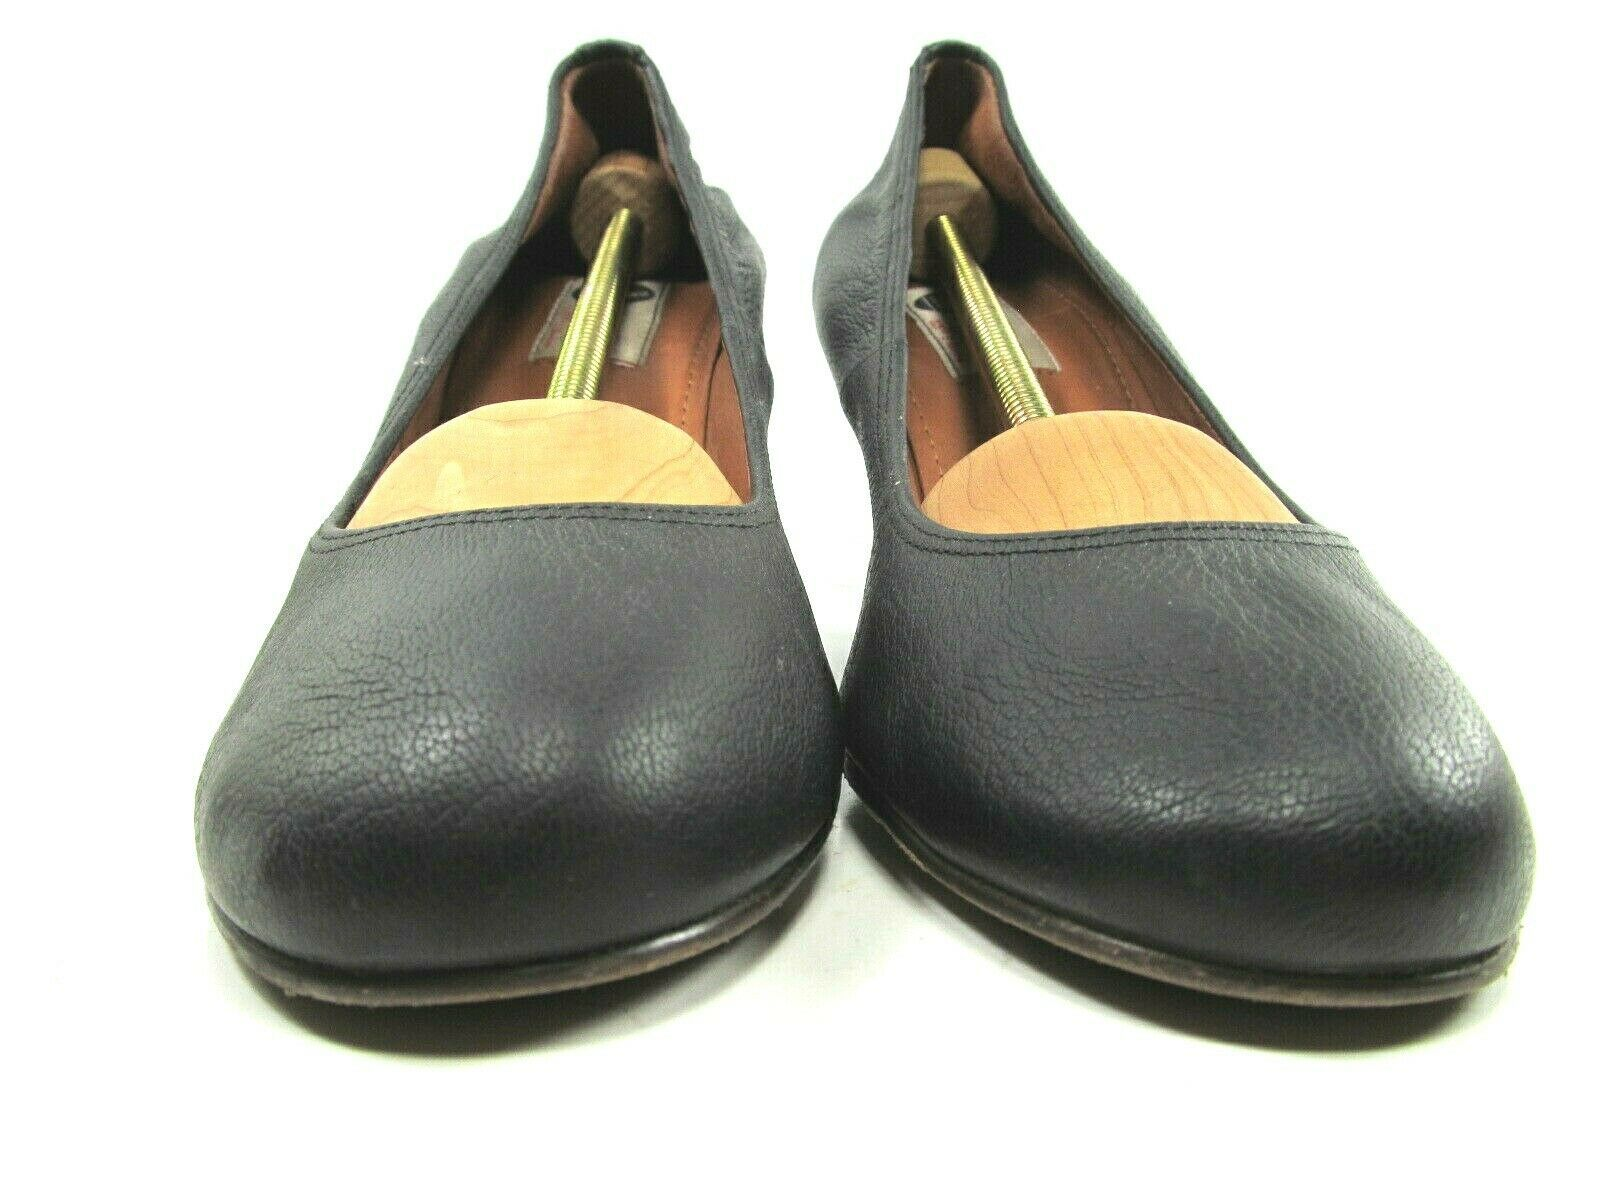 Lanvin Paris Womens Blacl Leather Round Toe Wedge High Heel Pumps Shoes US 10 image 5